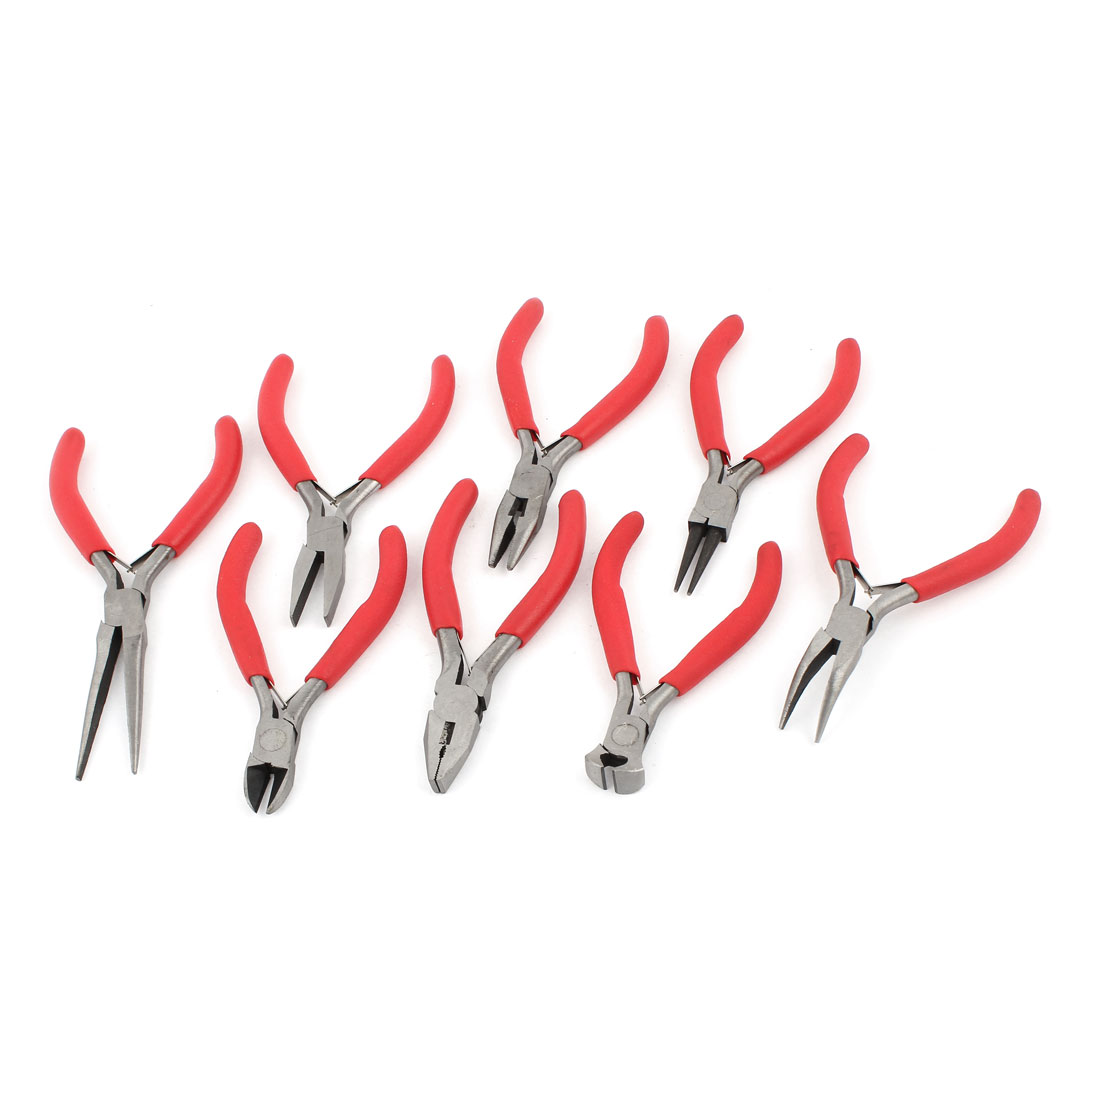 8 in 1 Plastic Nonslip Handle Single Leaf Spring Diagonal Side + Round Nose + Needle Jewelry Pliers Set